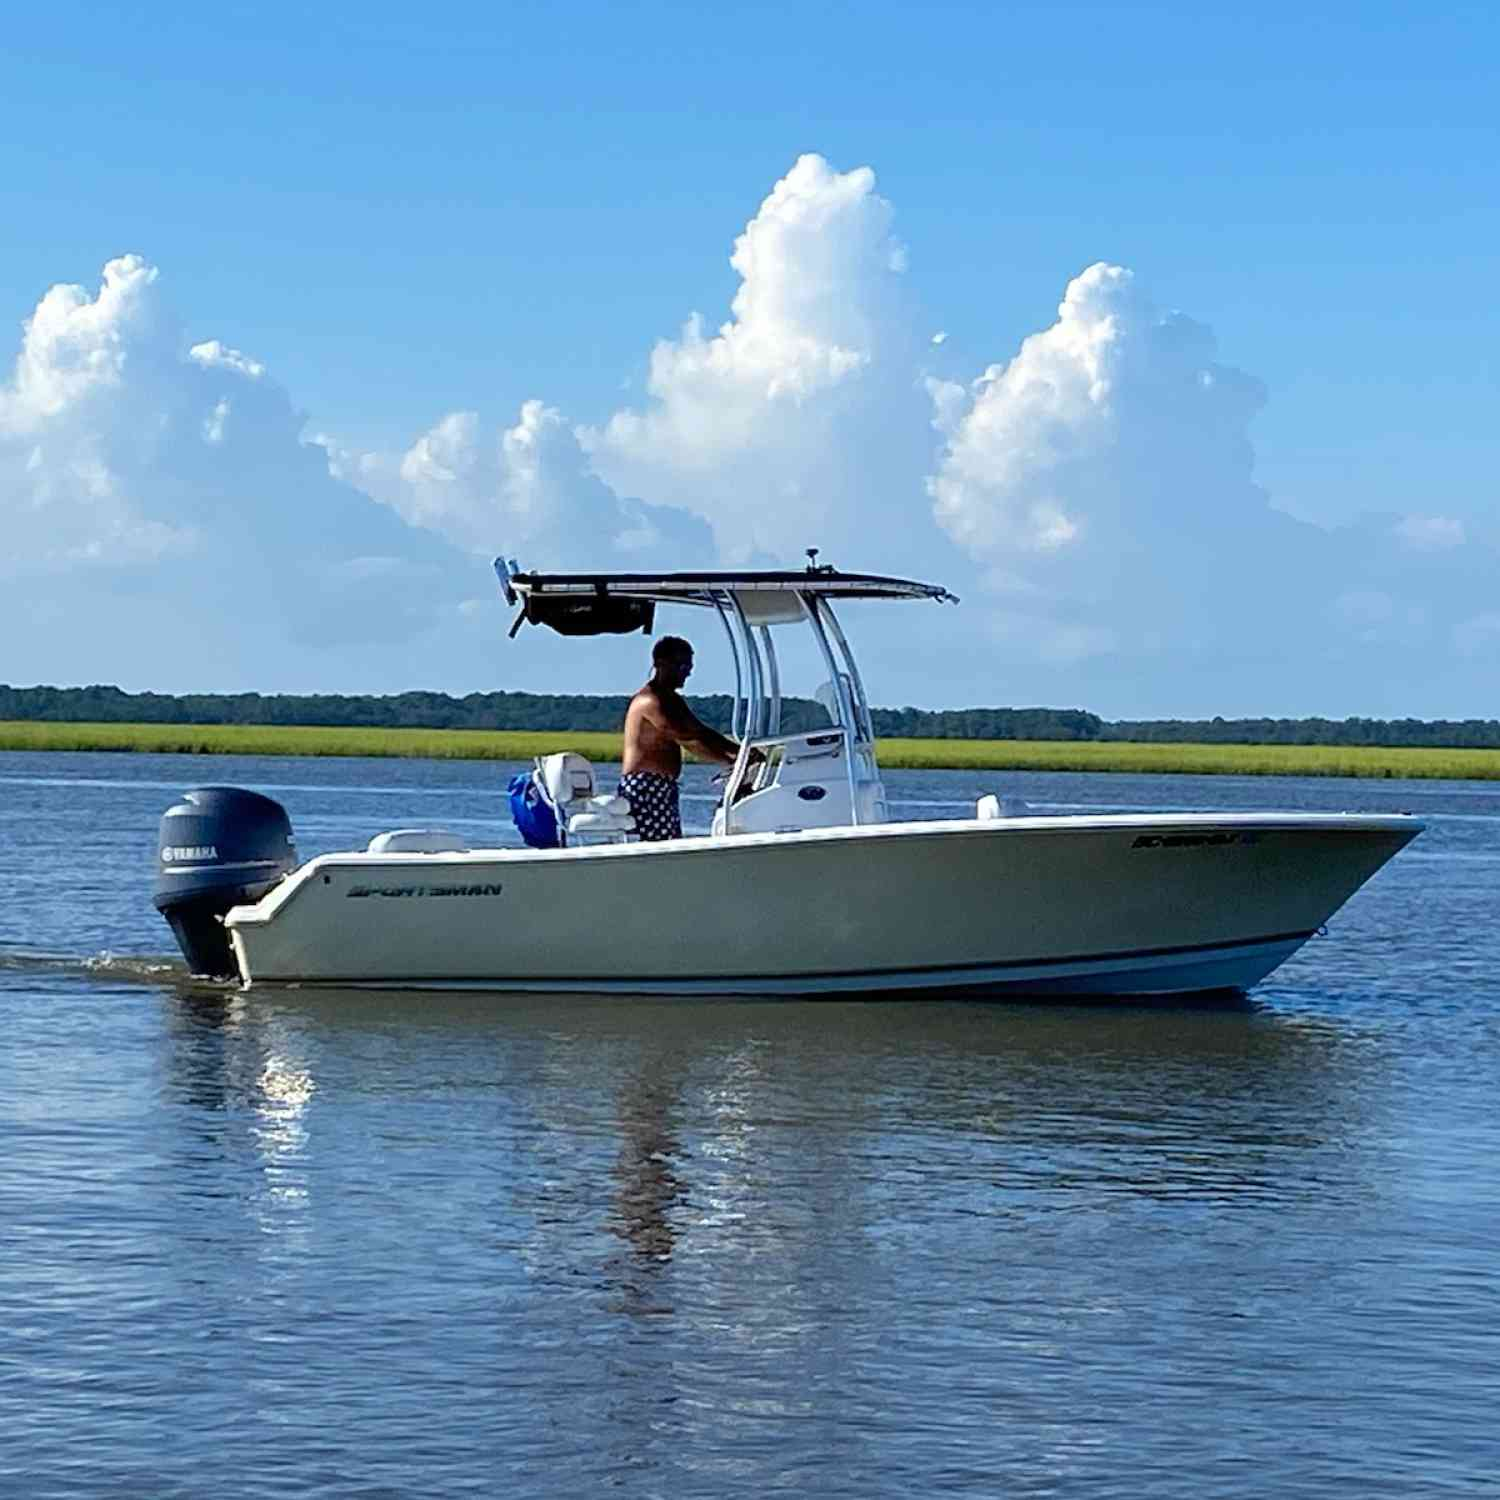 Title: Loading it up - On board their Sportsman Heritage 211 Center Console - Location: Steamboat Landing, Edisto Island, SC. Participating in the Photo Contest #SportsmanAugust2020